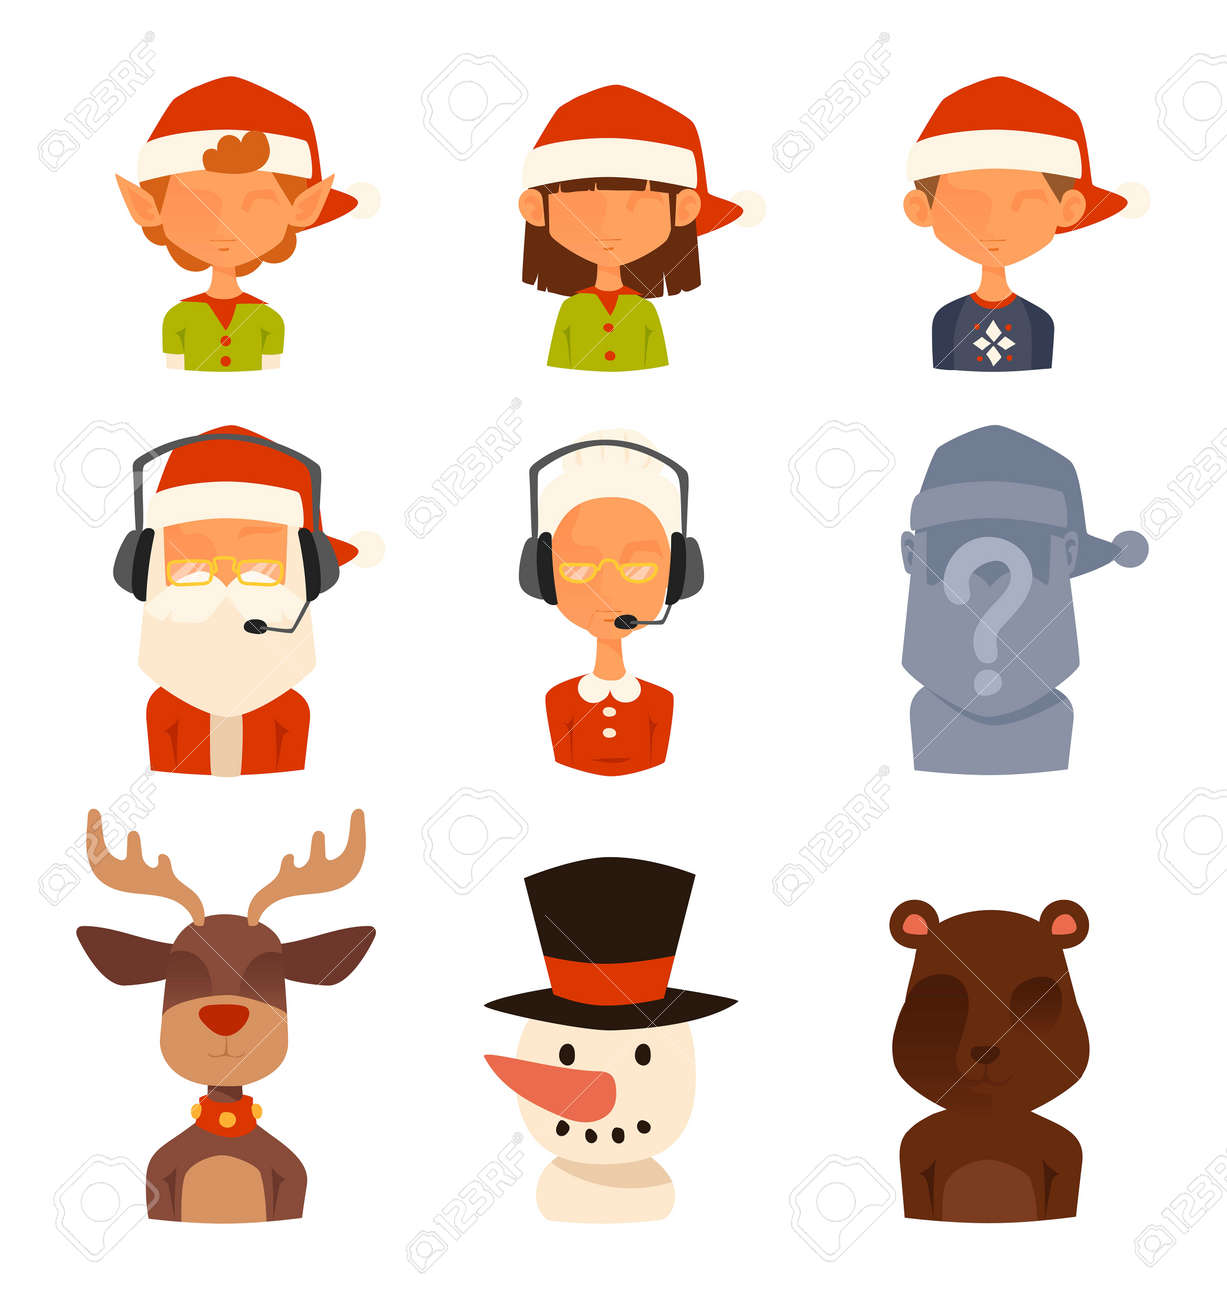 Christmas Shop Support Vector Avatars Store Gift Delivery Cartoon People Face Avatar